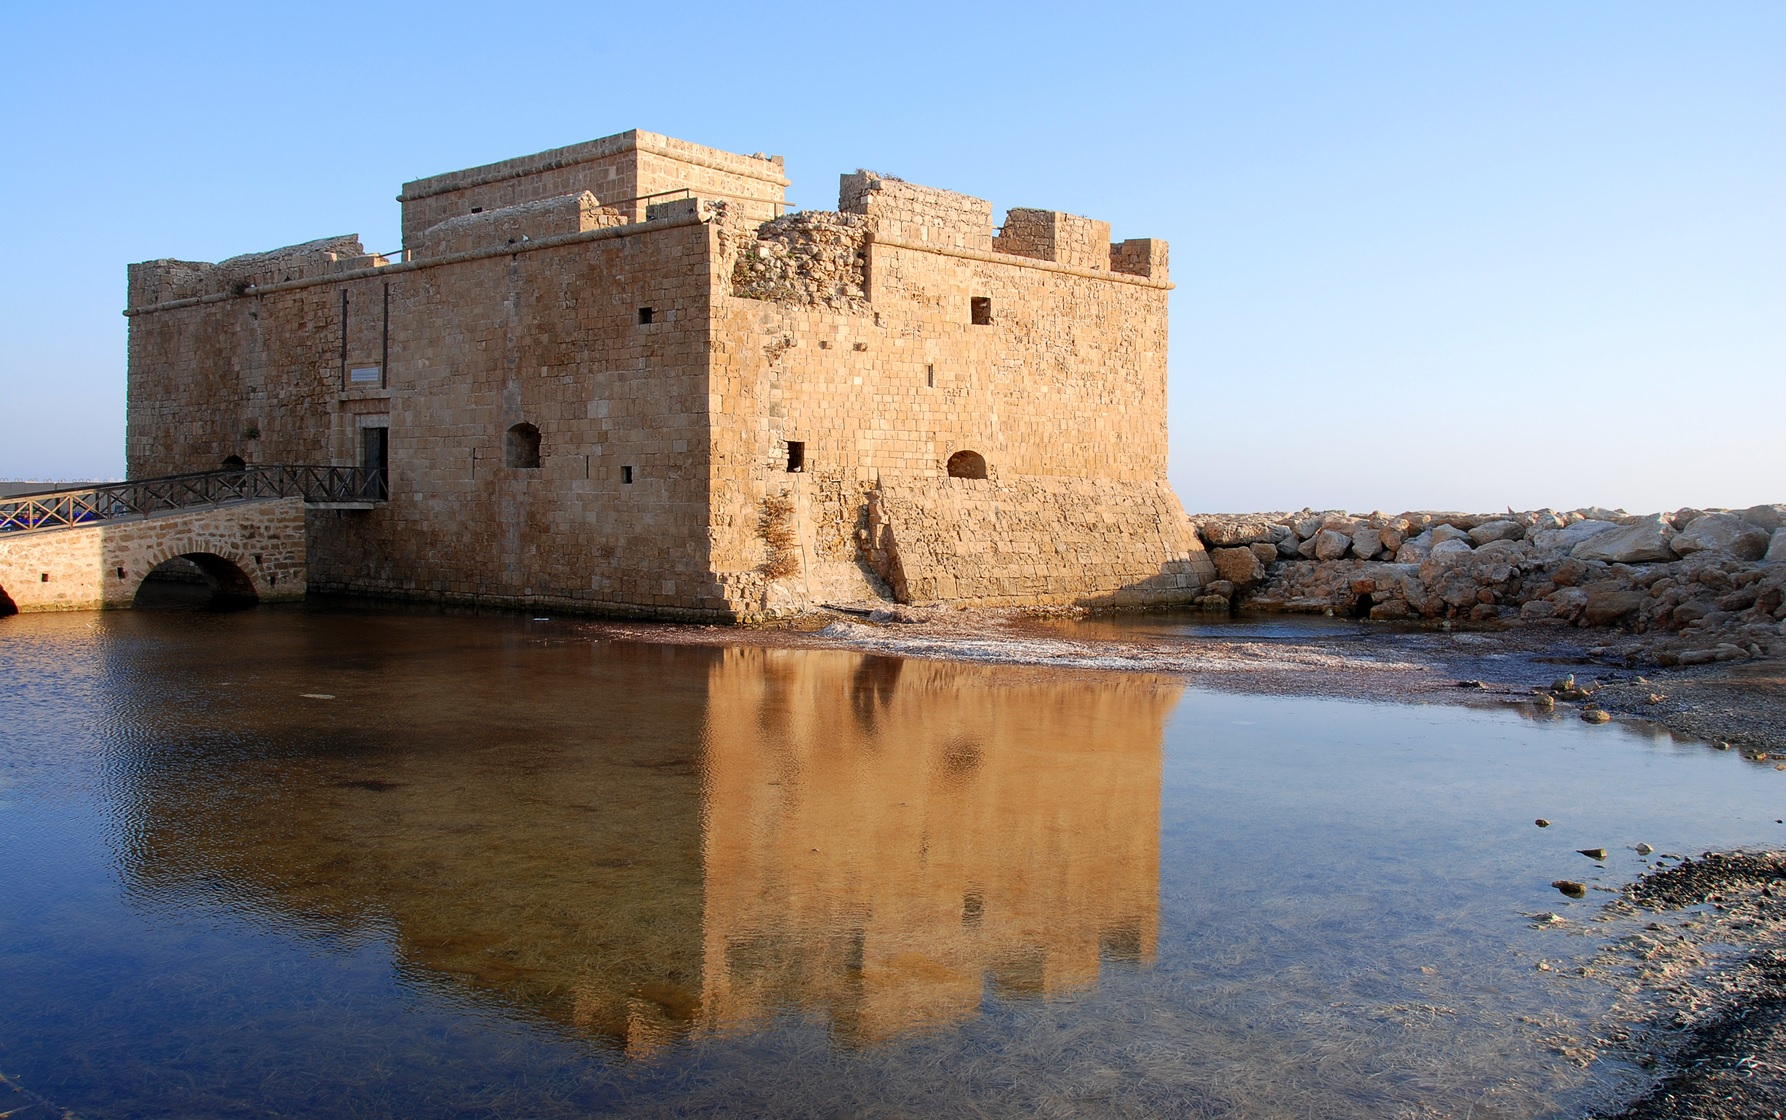 Its castle is one of the best reasons to visit Paphos